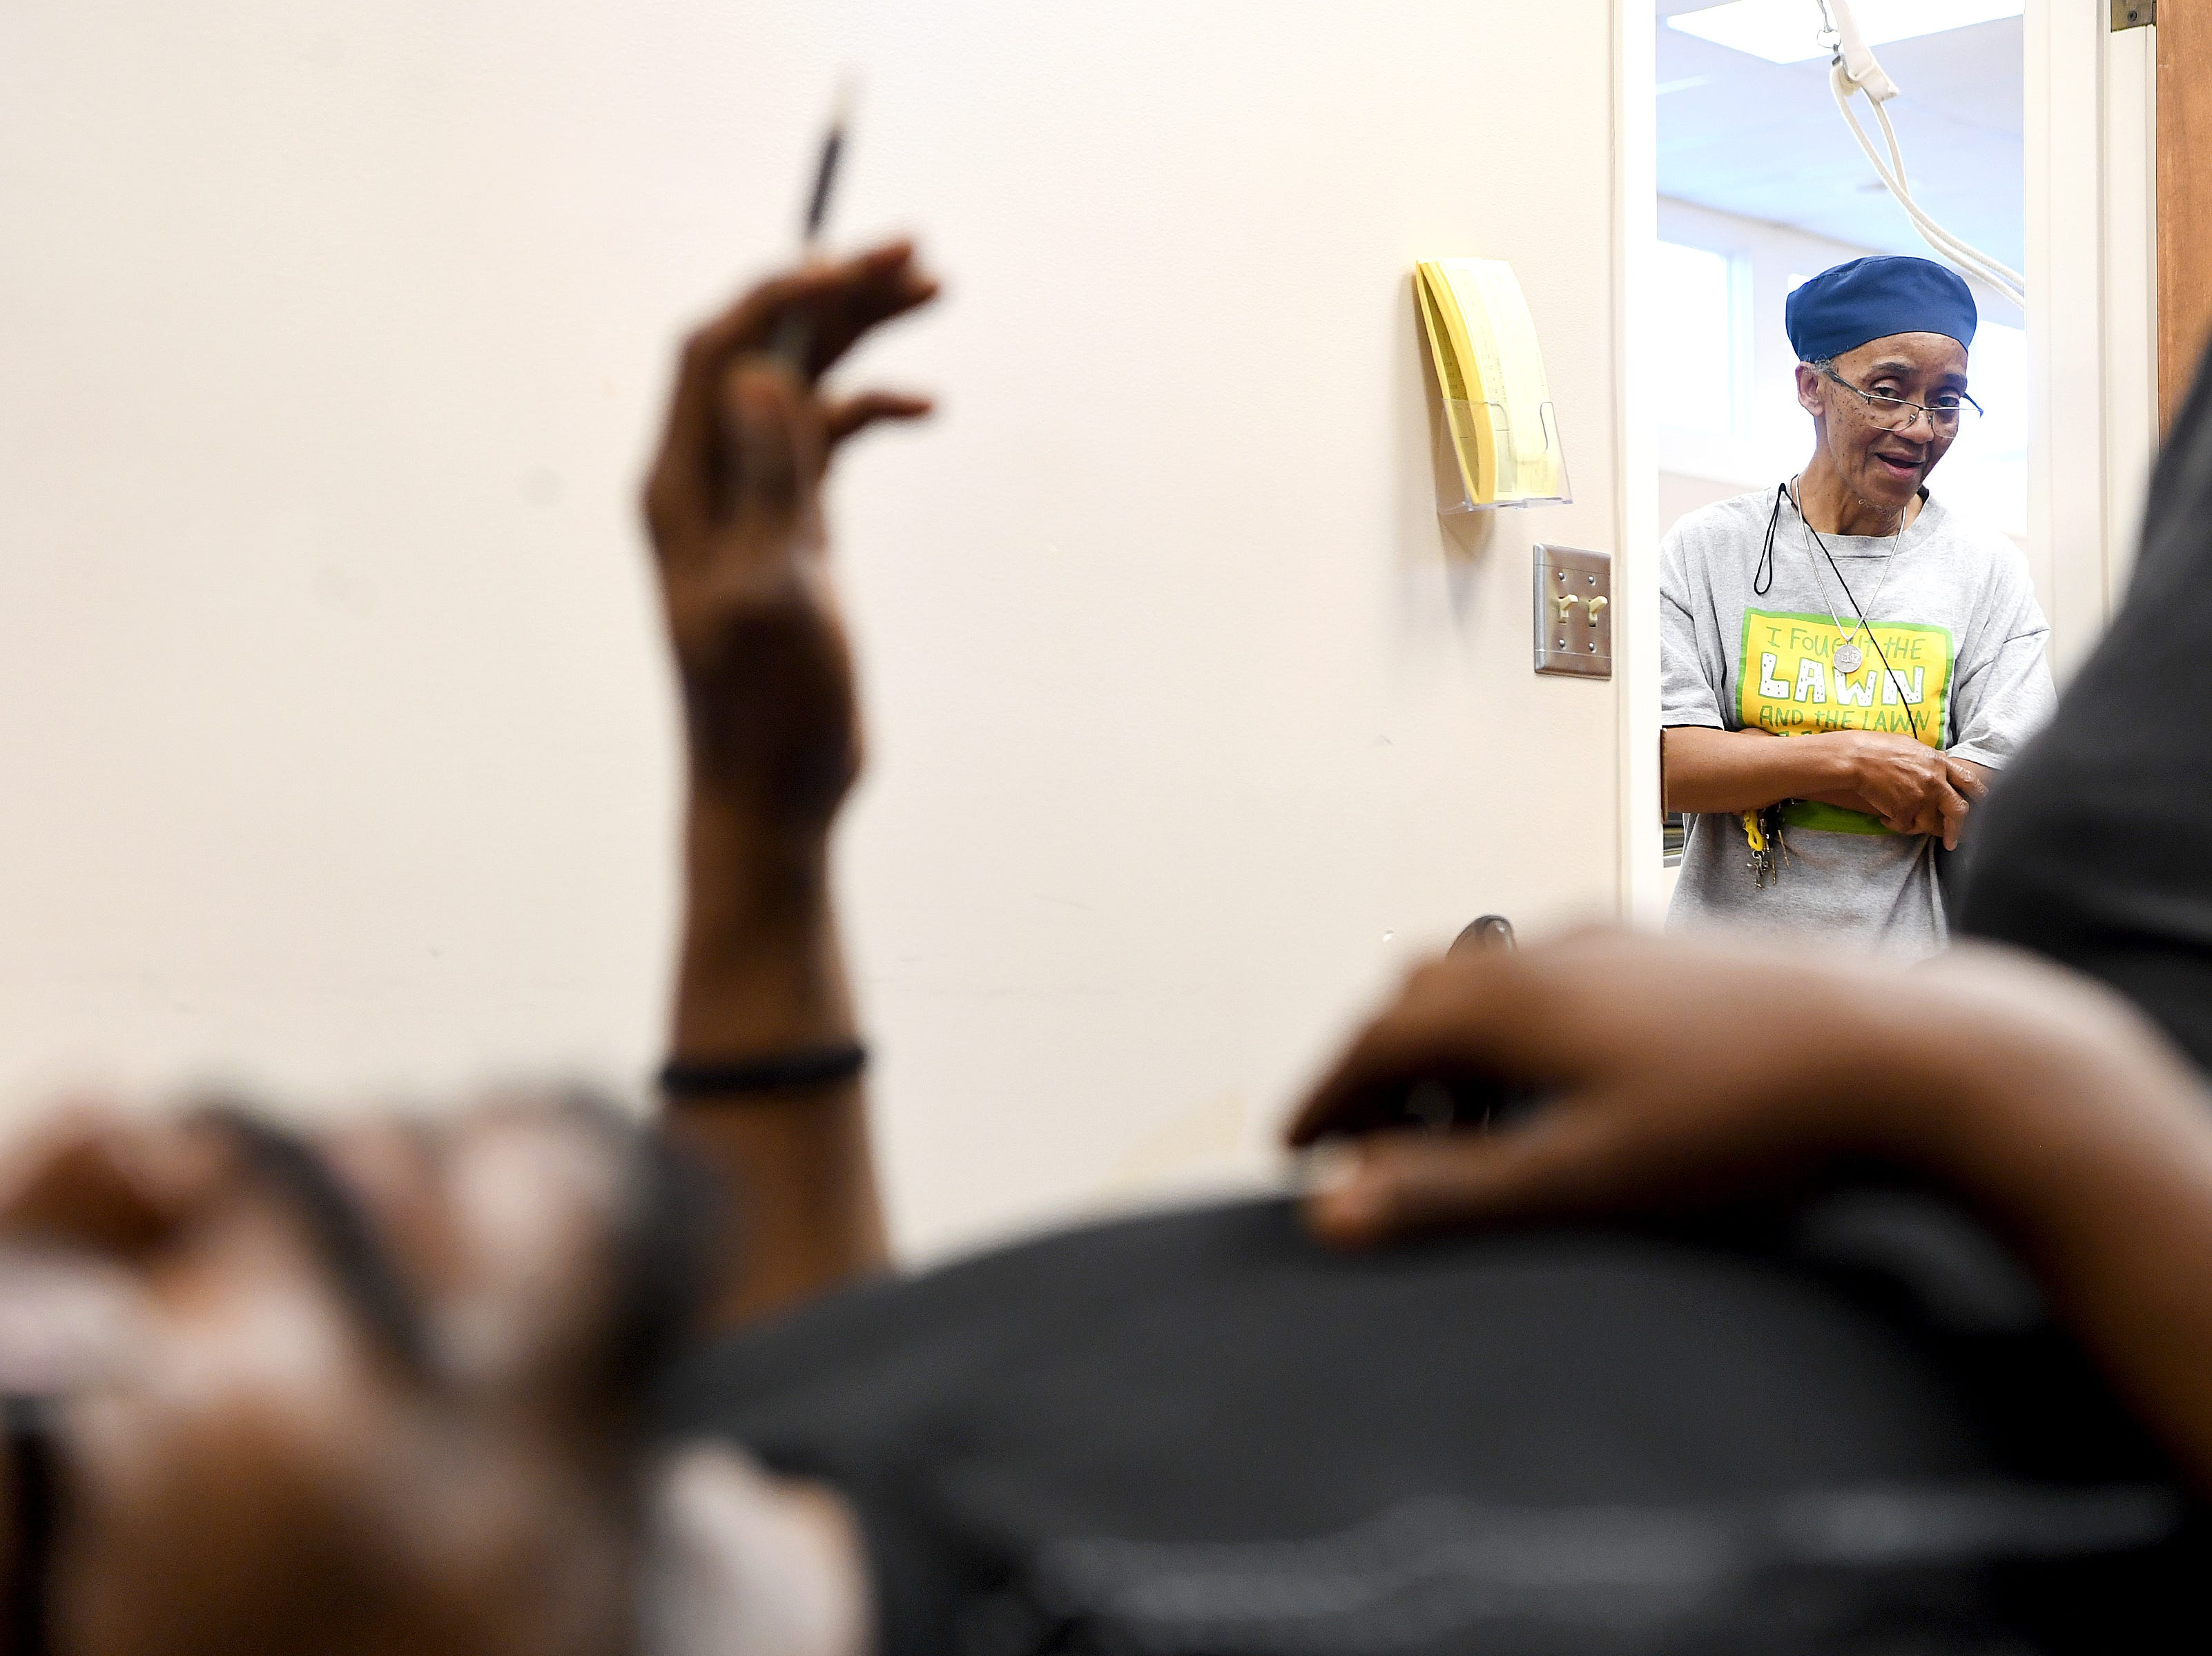 Hanan Shabazz peeks through the doorway as Octavius Boozier stretches during physical therapy at CarePartners  on May 8, 2019. Shabazz has been a surrogate grandmother for Boozier and was by his side during his extensive stay in the hospital.